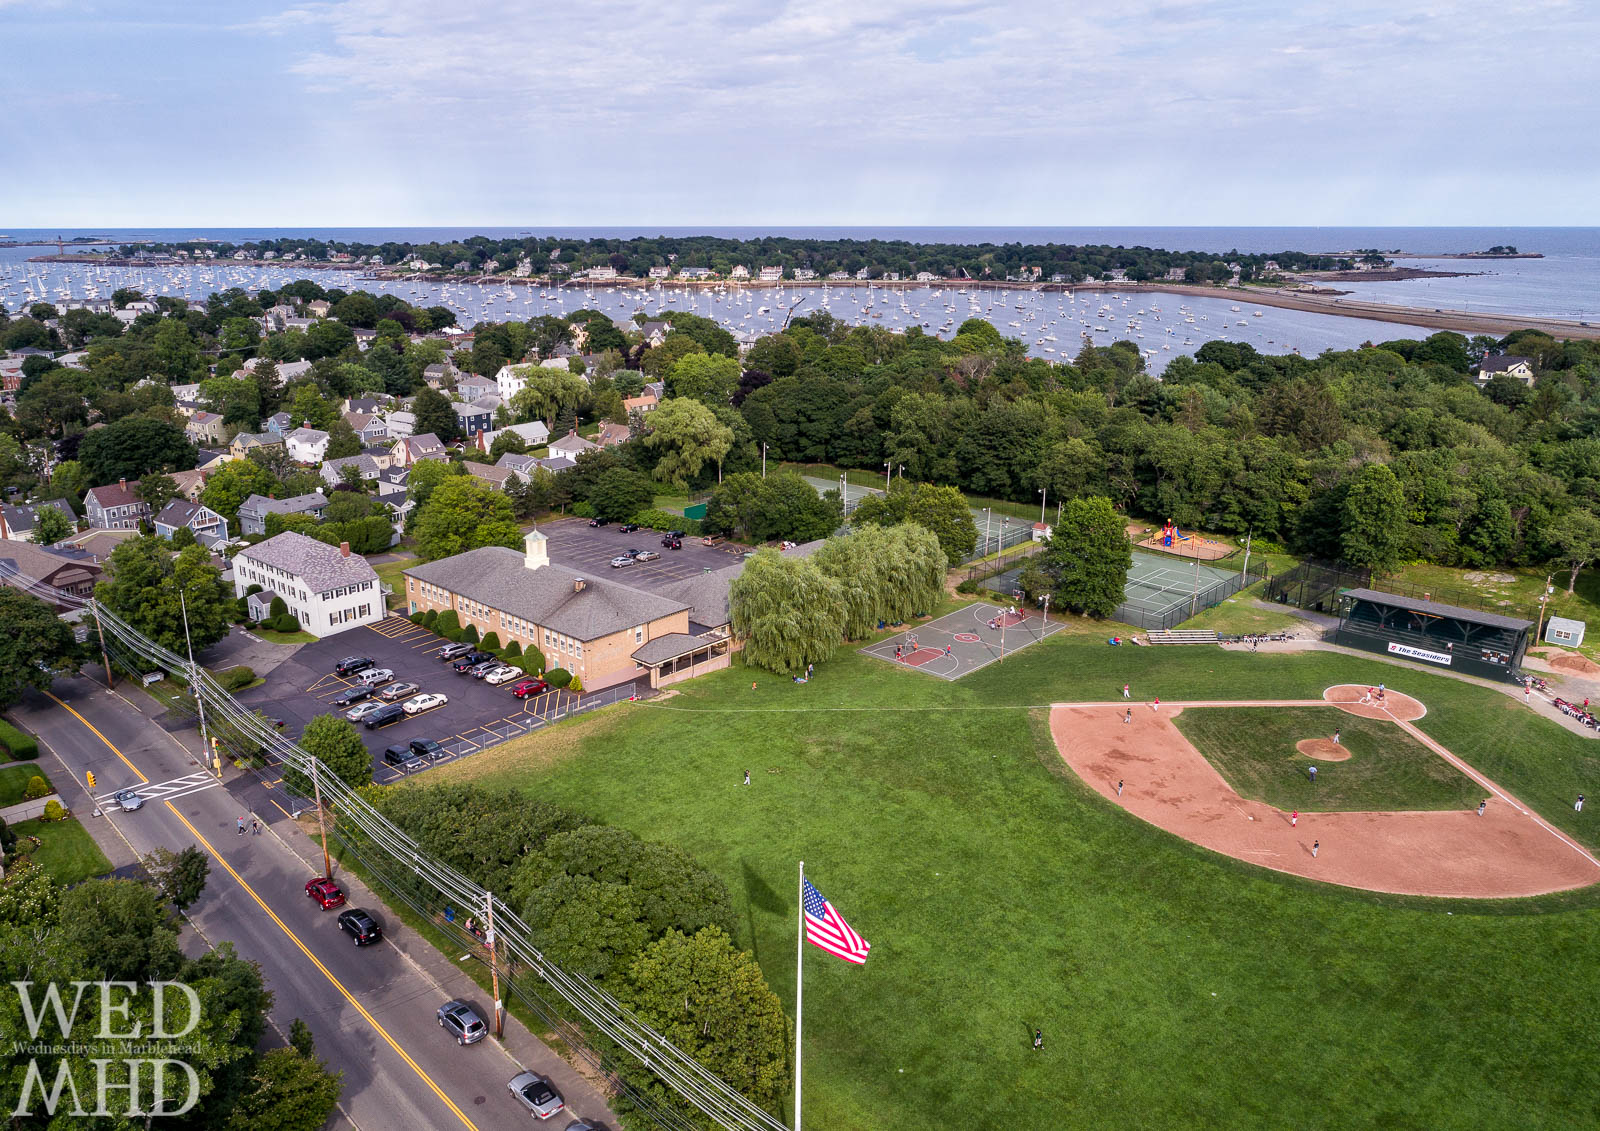 Aerial view of the Seasiders playing ball at Seaside Park with a filled harbor and Marblehead Neck serving as a perfect backdrop